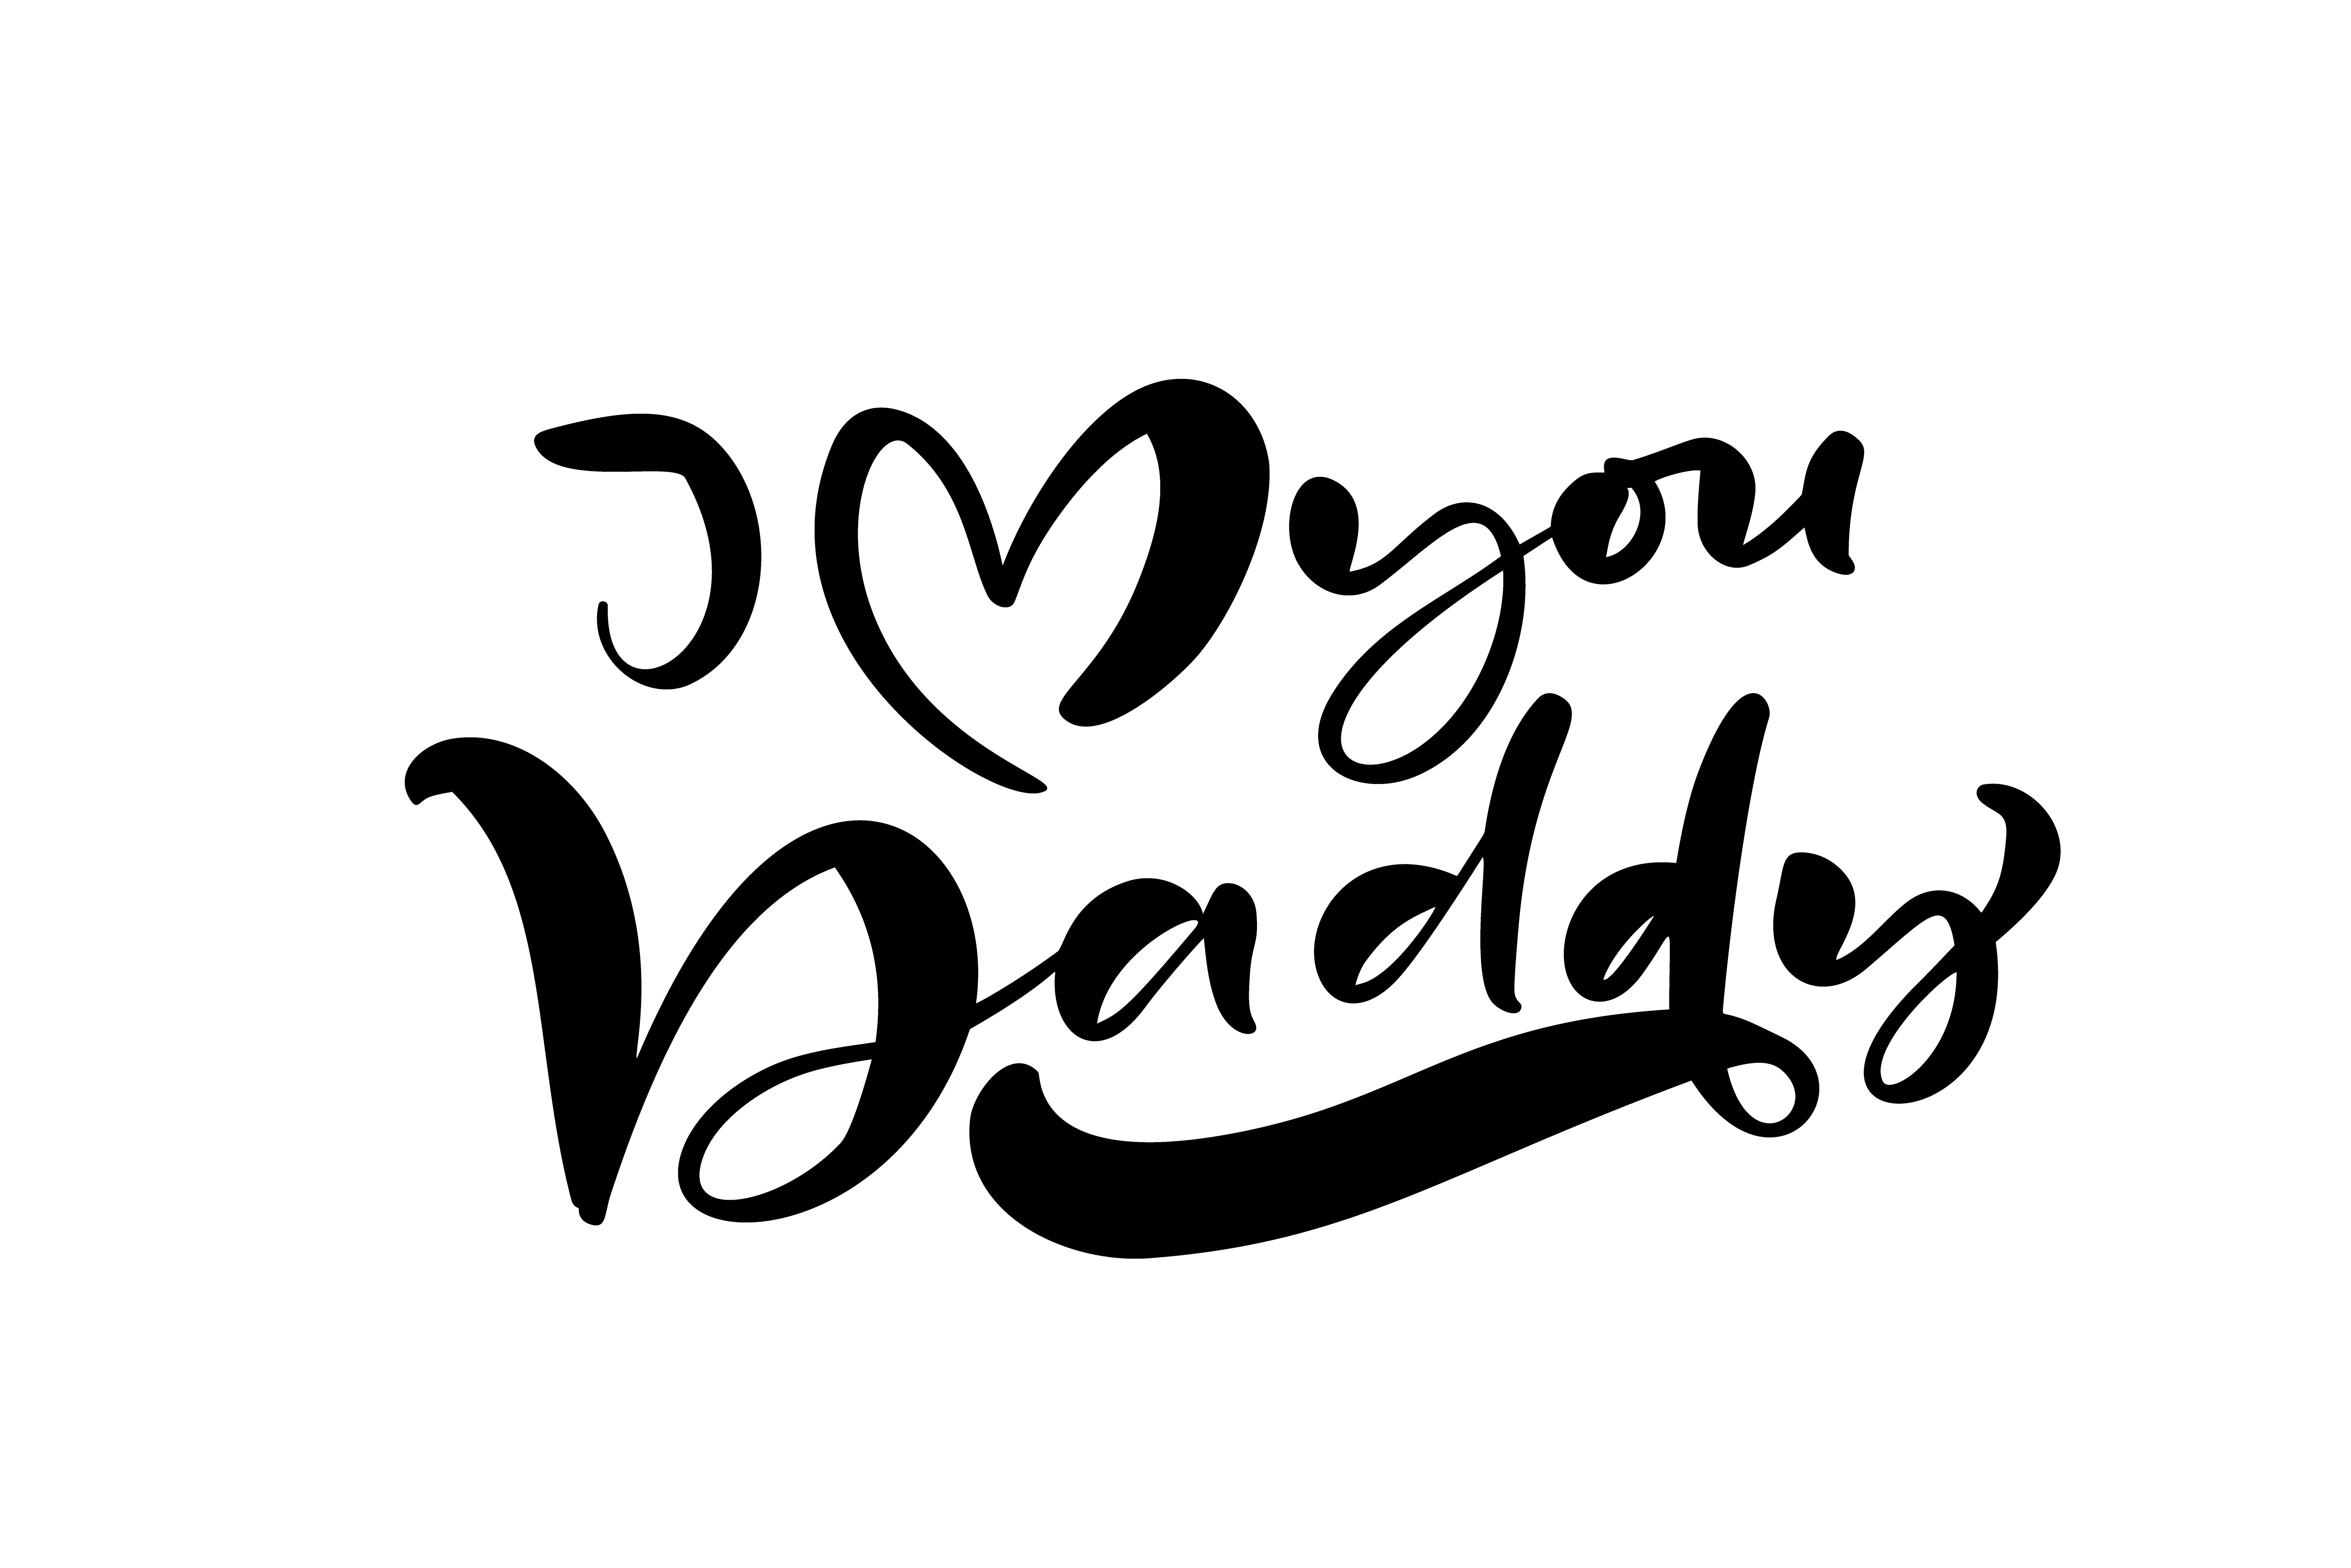 I Love You Daddy Lettering Black Vector Calligraphy Text